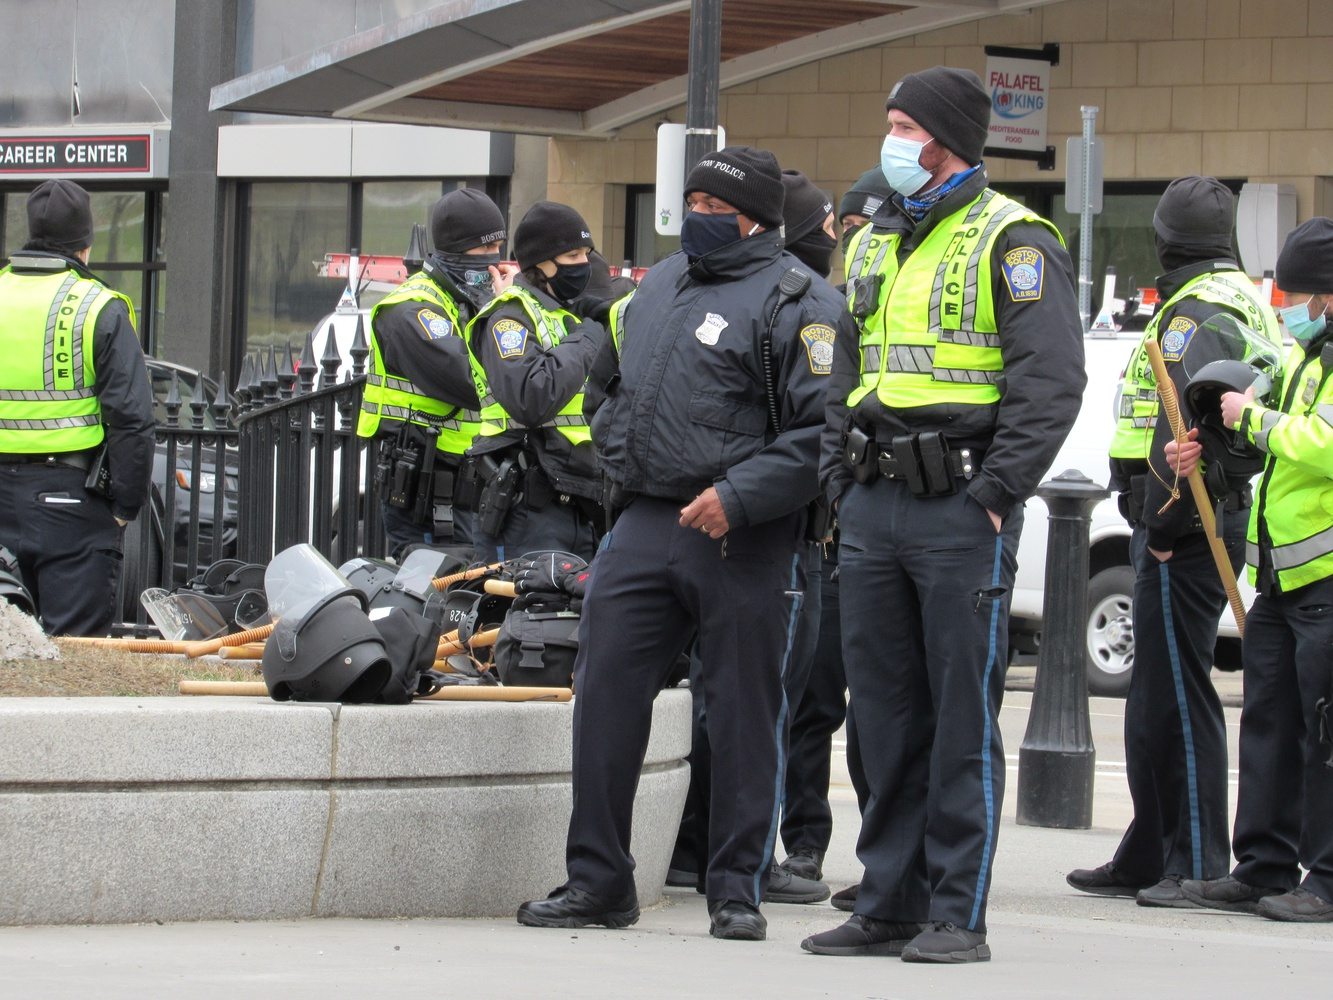 Boston Police prepare for potentially violent demonstrations at the Massachusetts State House on Inauguration Day, Jan. 6, 2021.